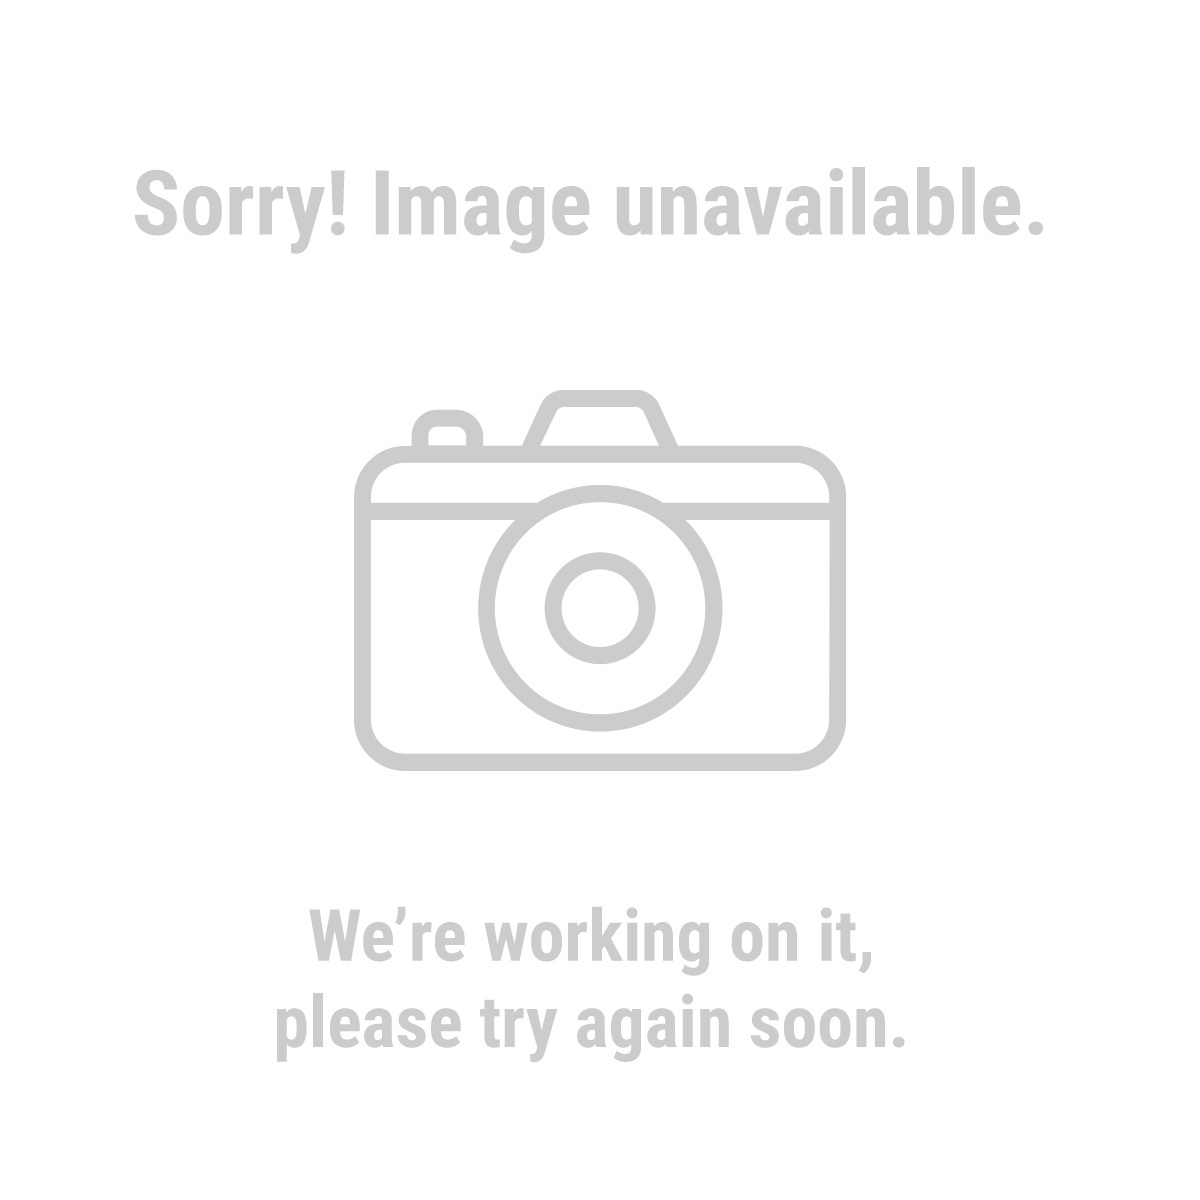 Central Pneumatic® 62251 100 ft. x 1/2 in. Heavy Duty Premium Rubber Air Hose